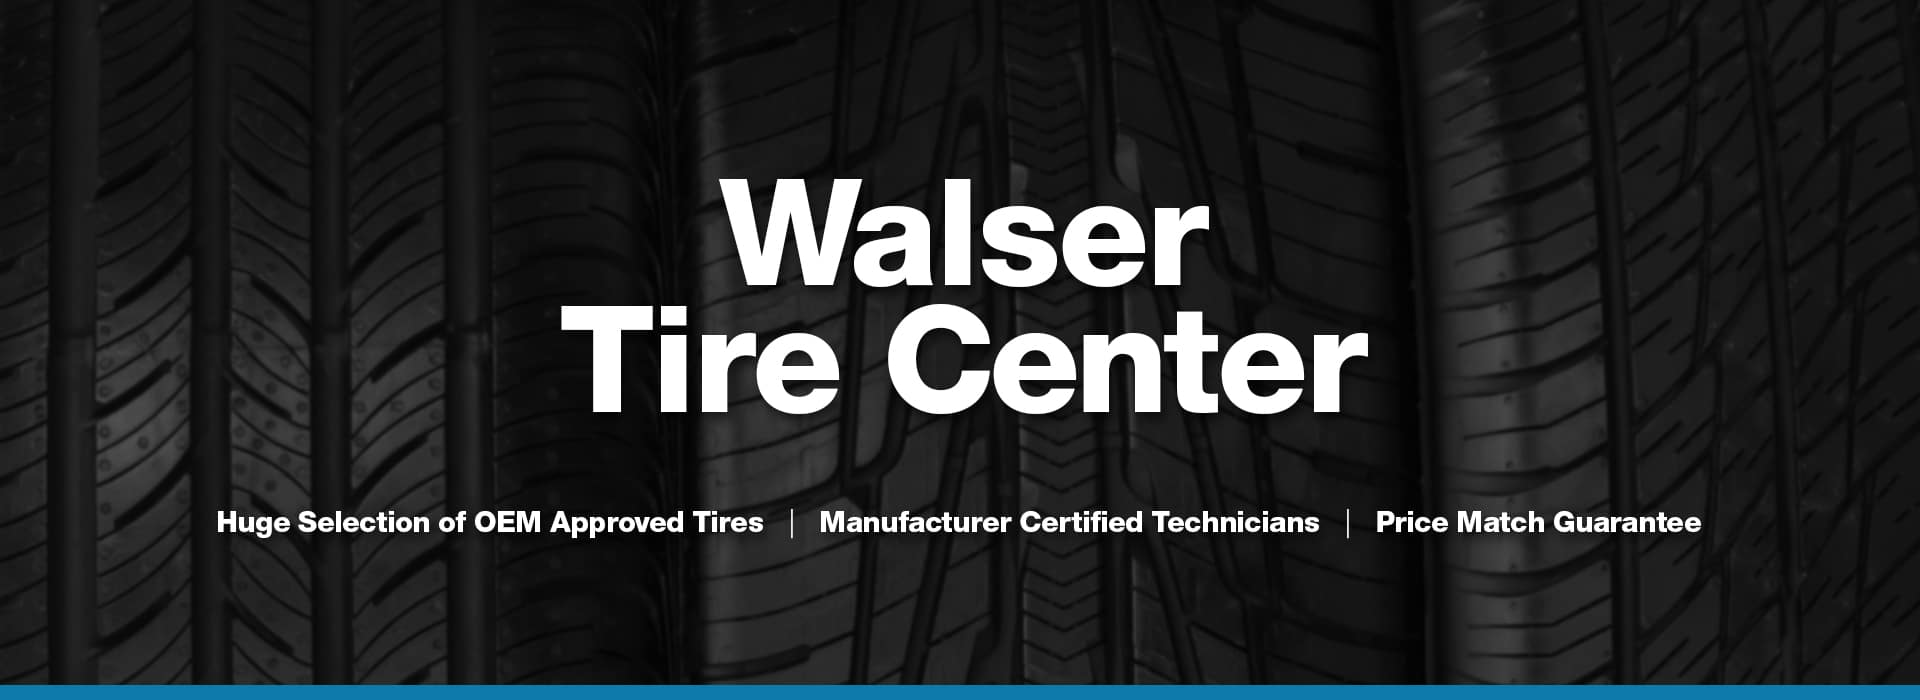 Welcome to the Walser Tire Center